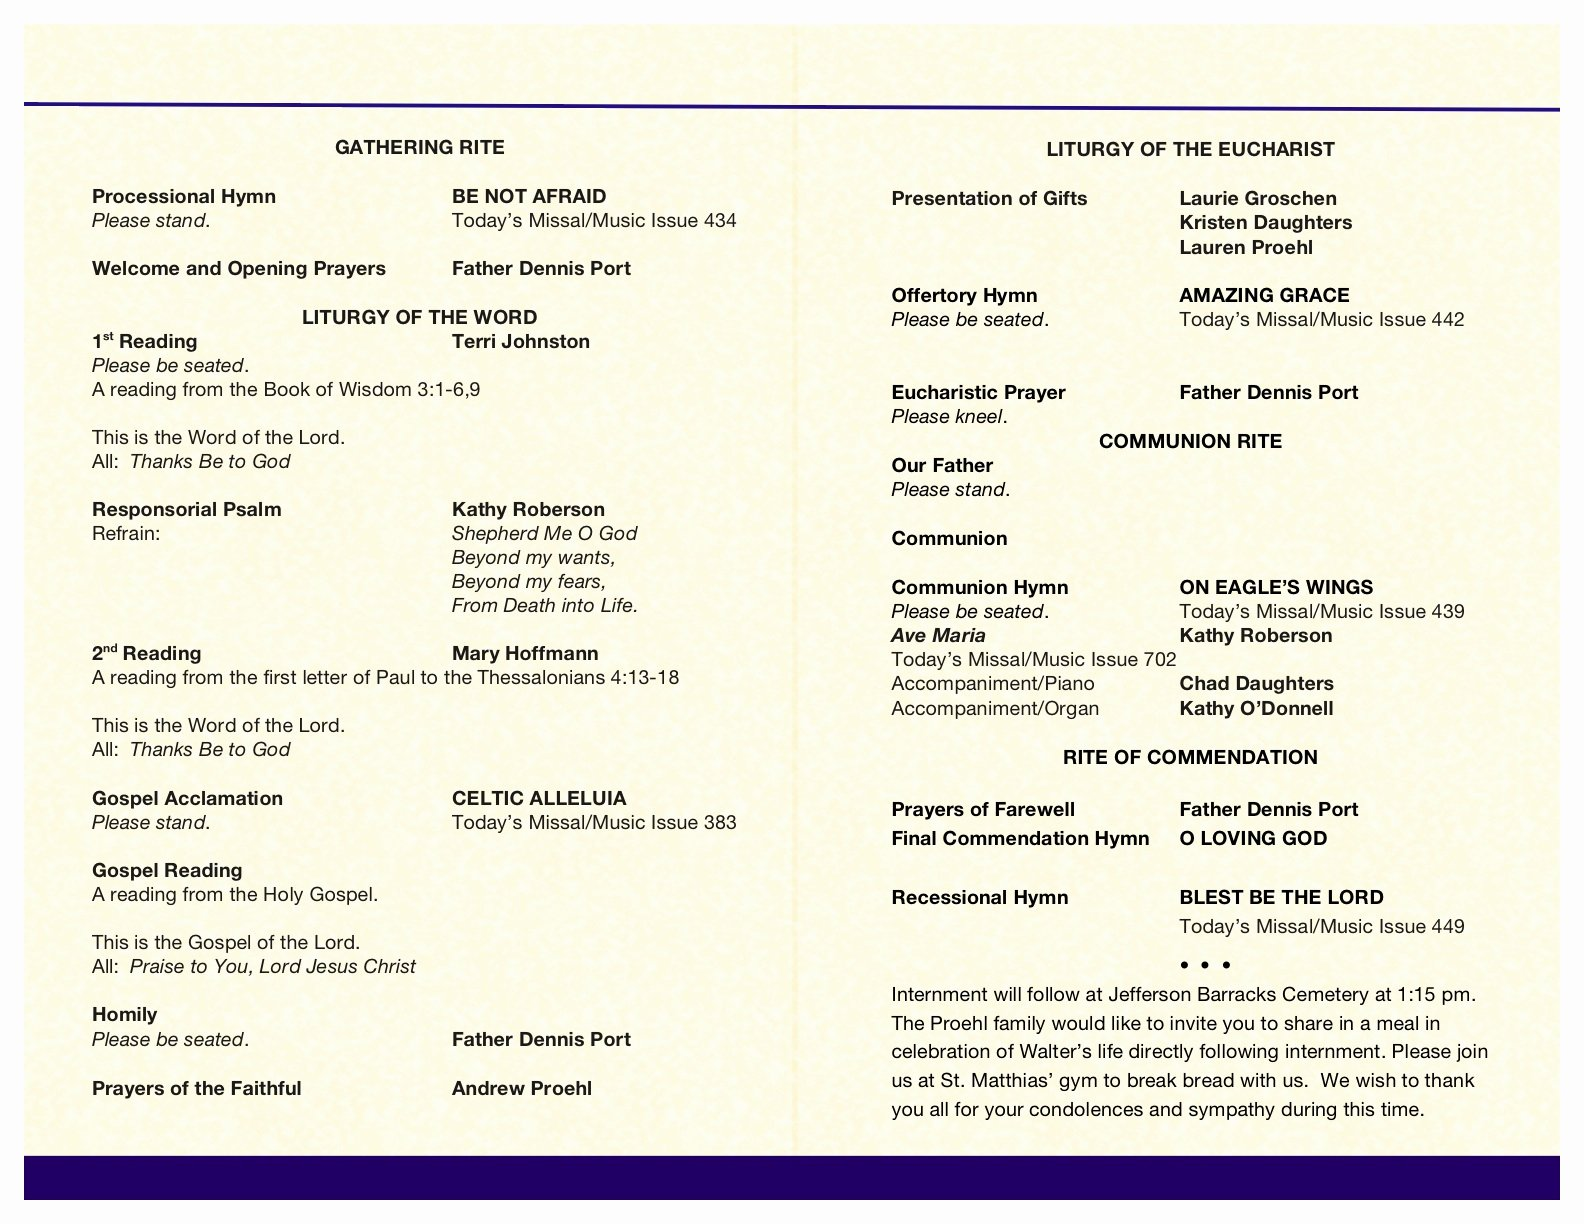 Funeral Mass Program Template Best Of Wally's Funeral Mass Booklet